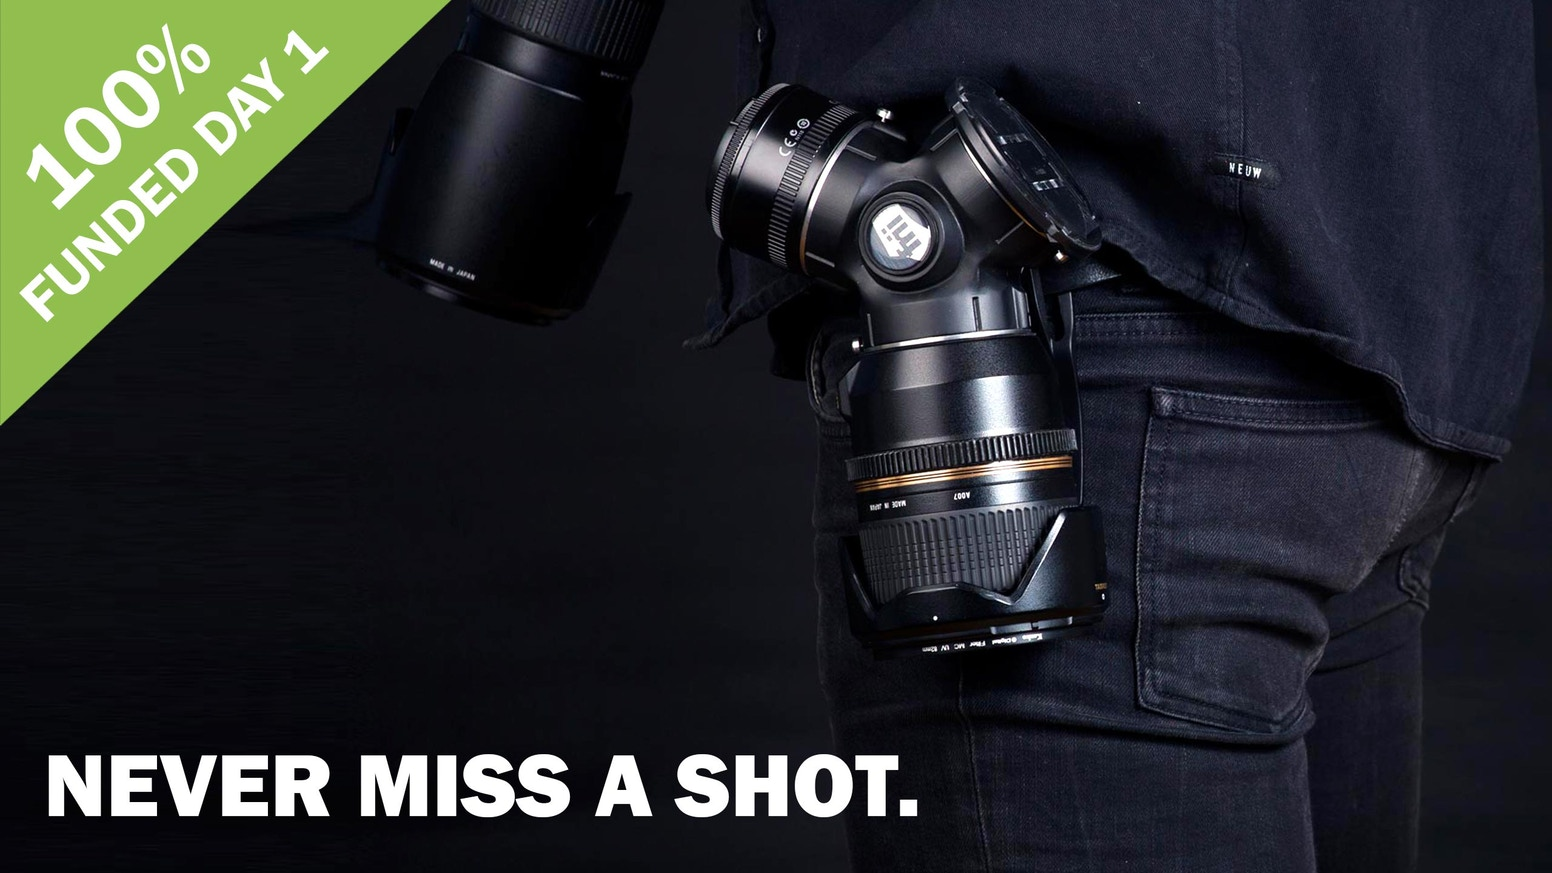 The TriLens safely carries up to three of your favorite DSLR lenses and changing your glass has never been faster. Follow the link below to secure your copy.